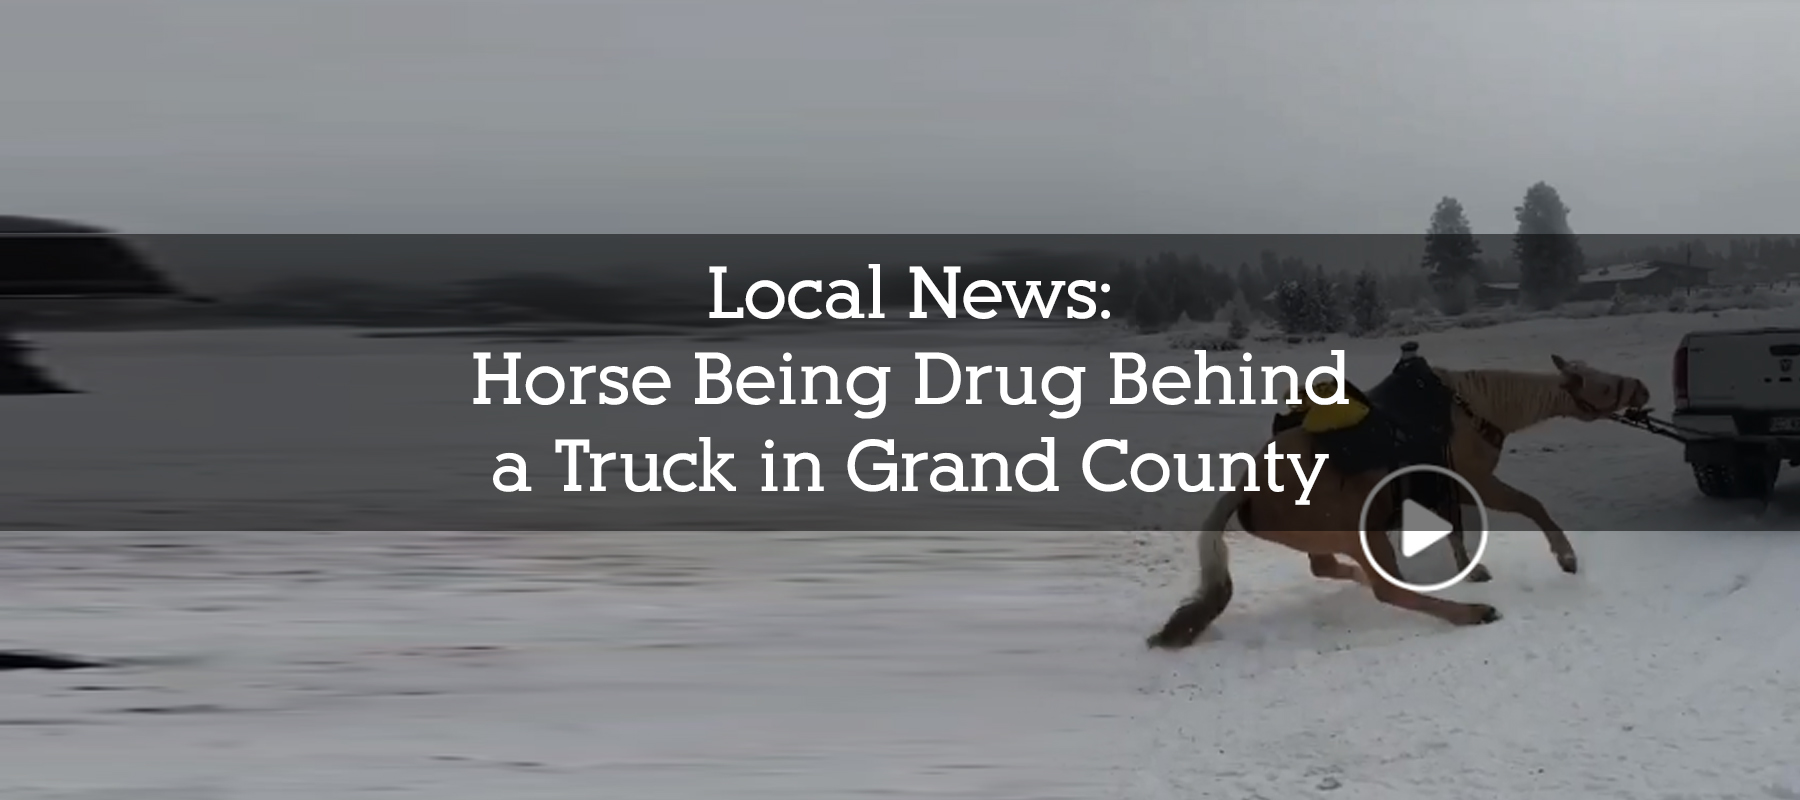 Horse Being Drug in Grand County